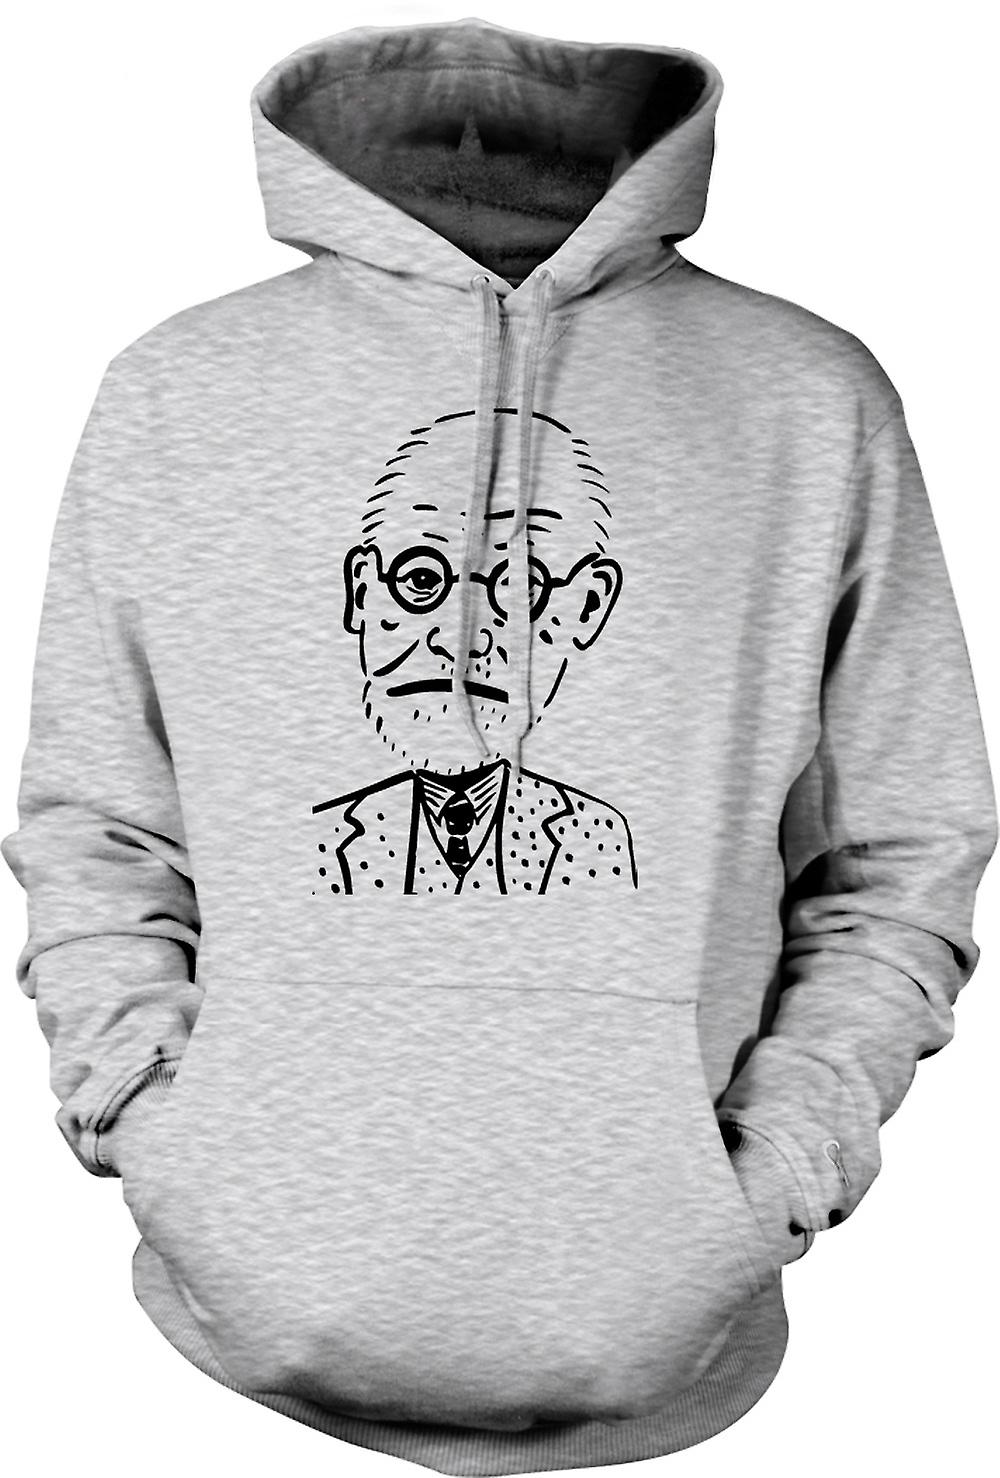 Mens Hoodie - Sigmund Freud - Psychology - Caricature